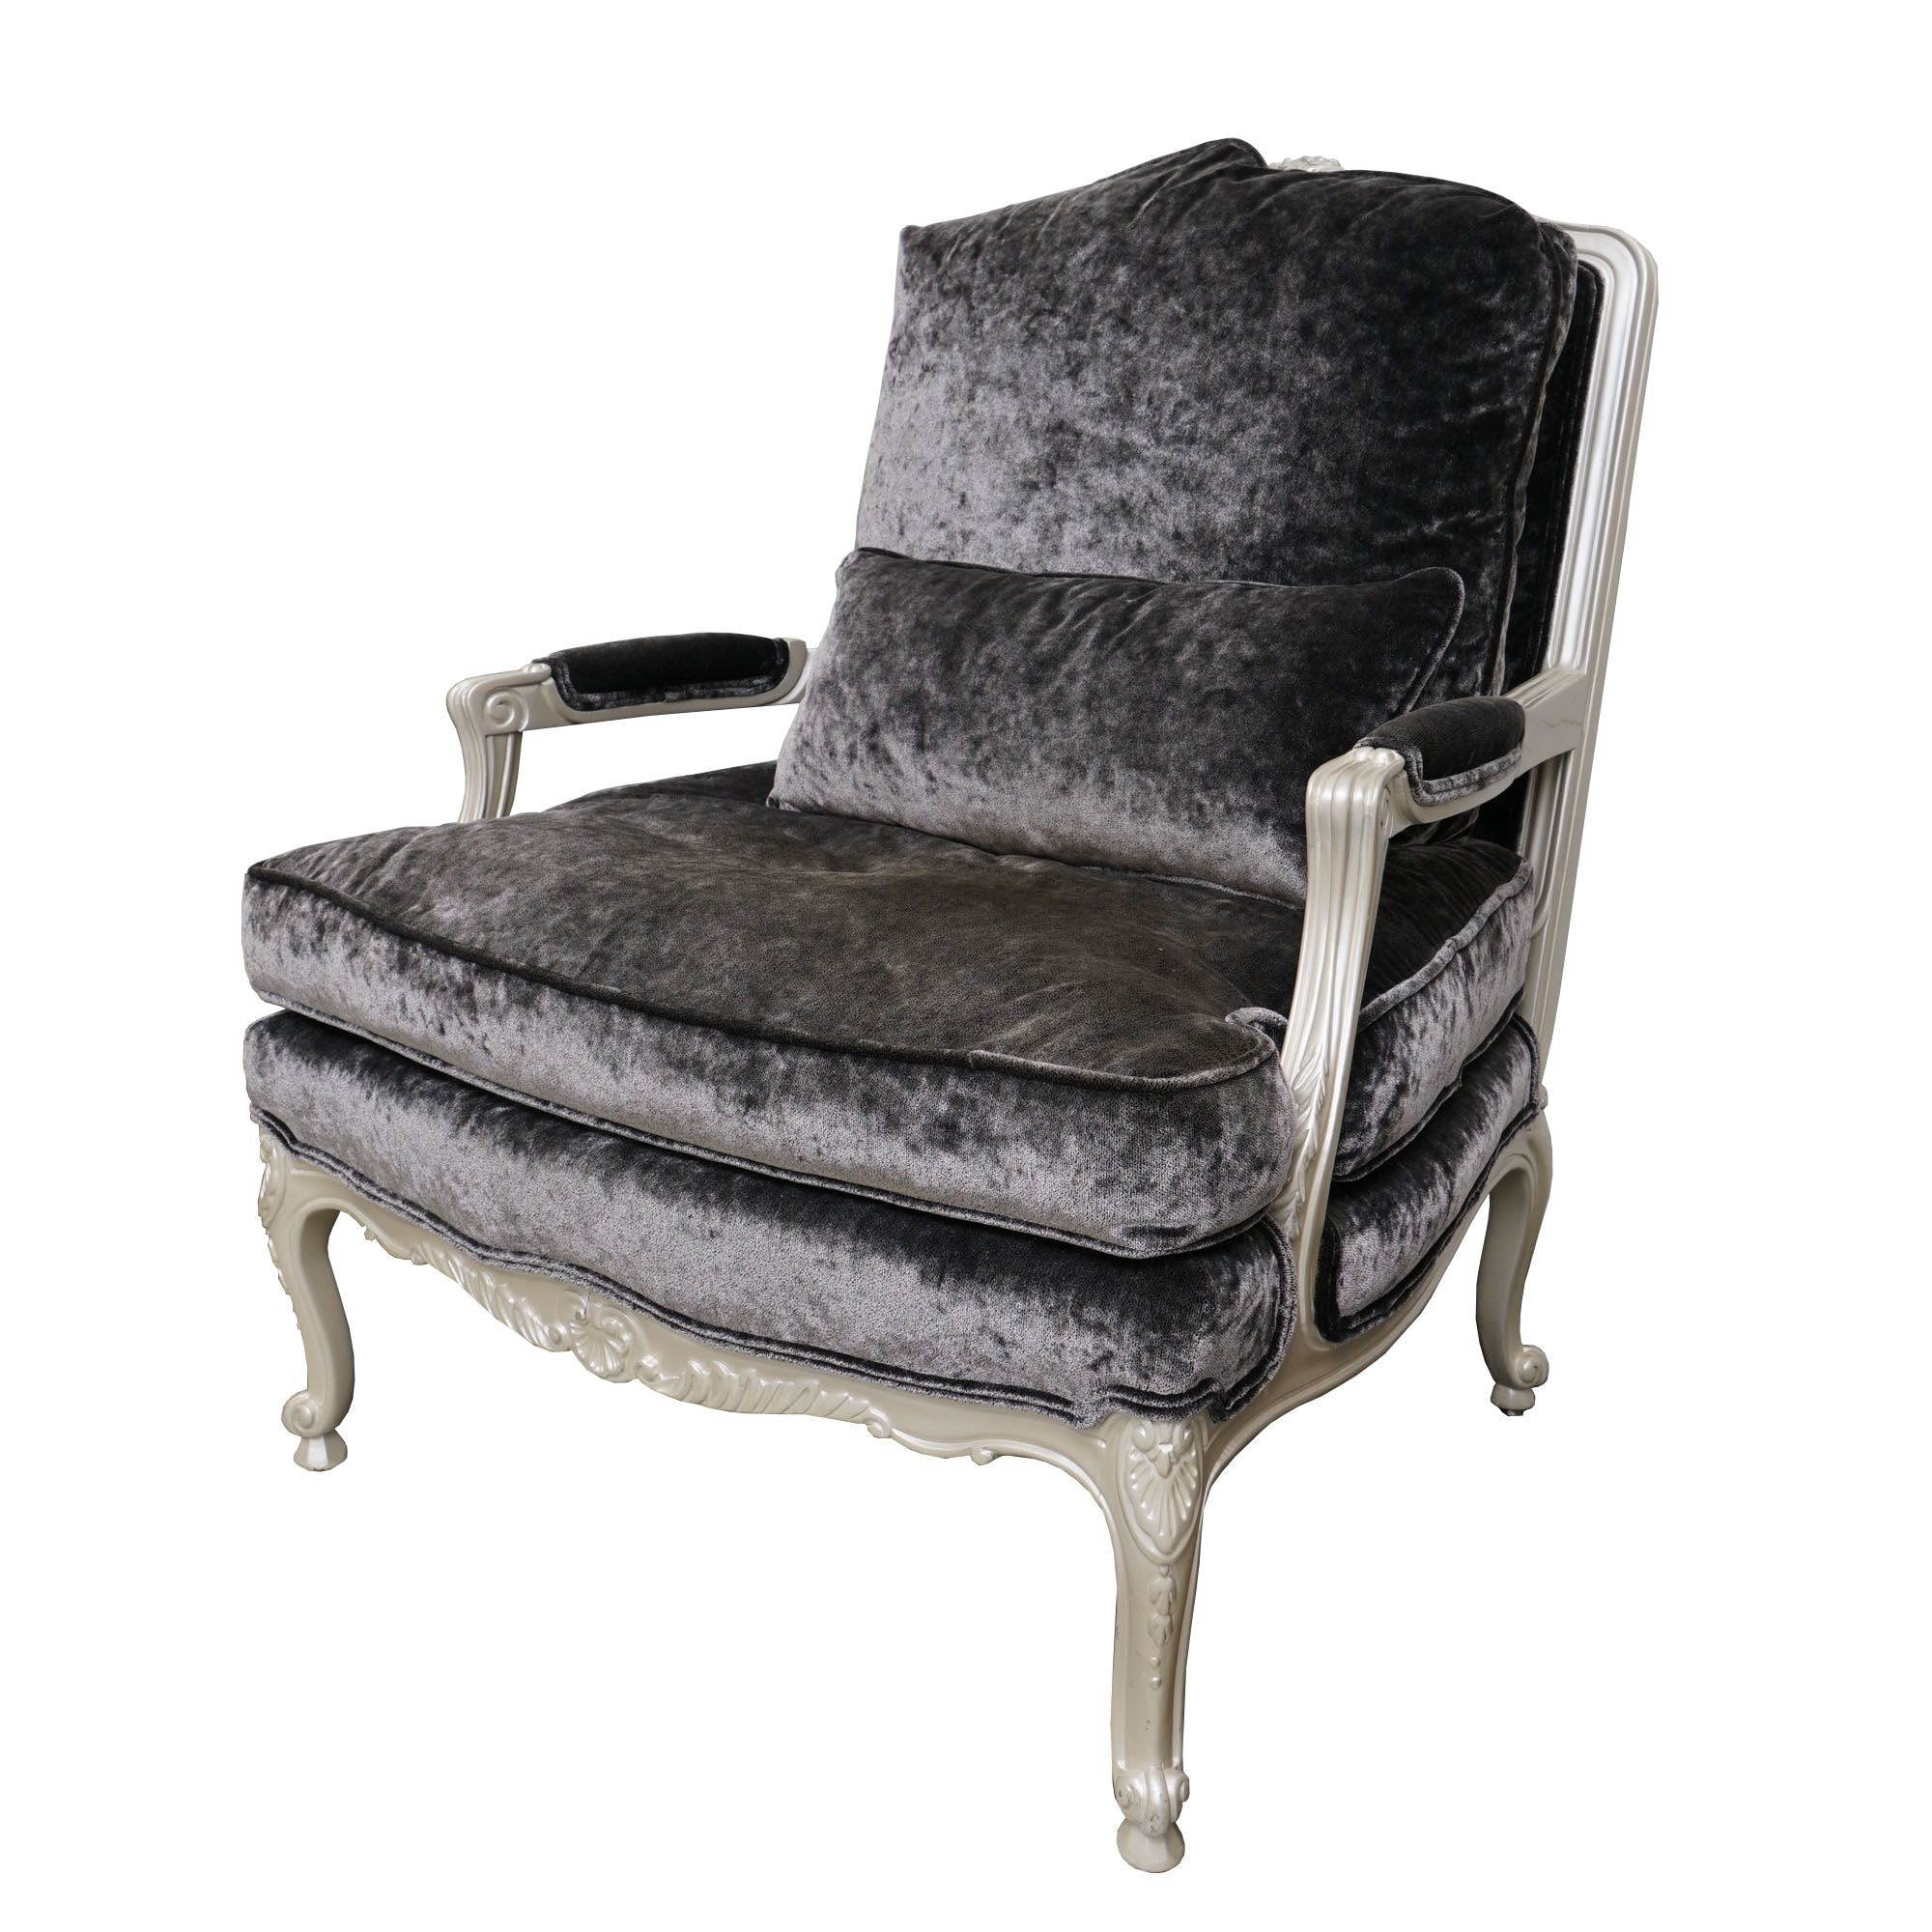 Louis XV Style Painted Fauteuil with Calvin Klein Velvet Upholstery